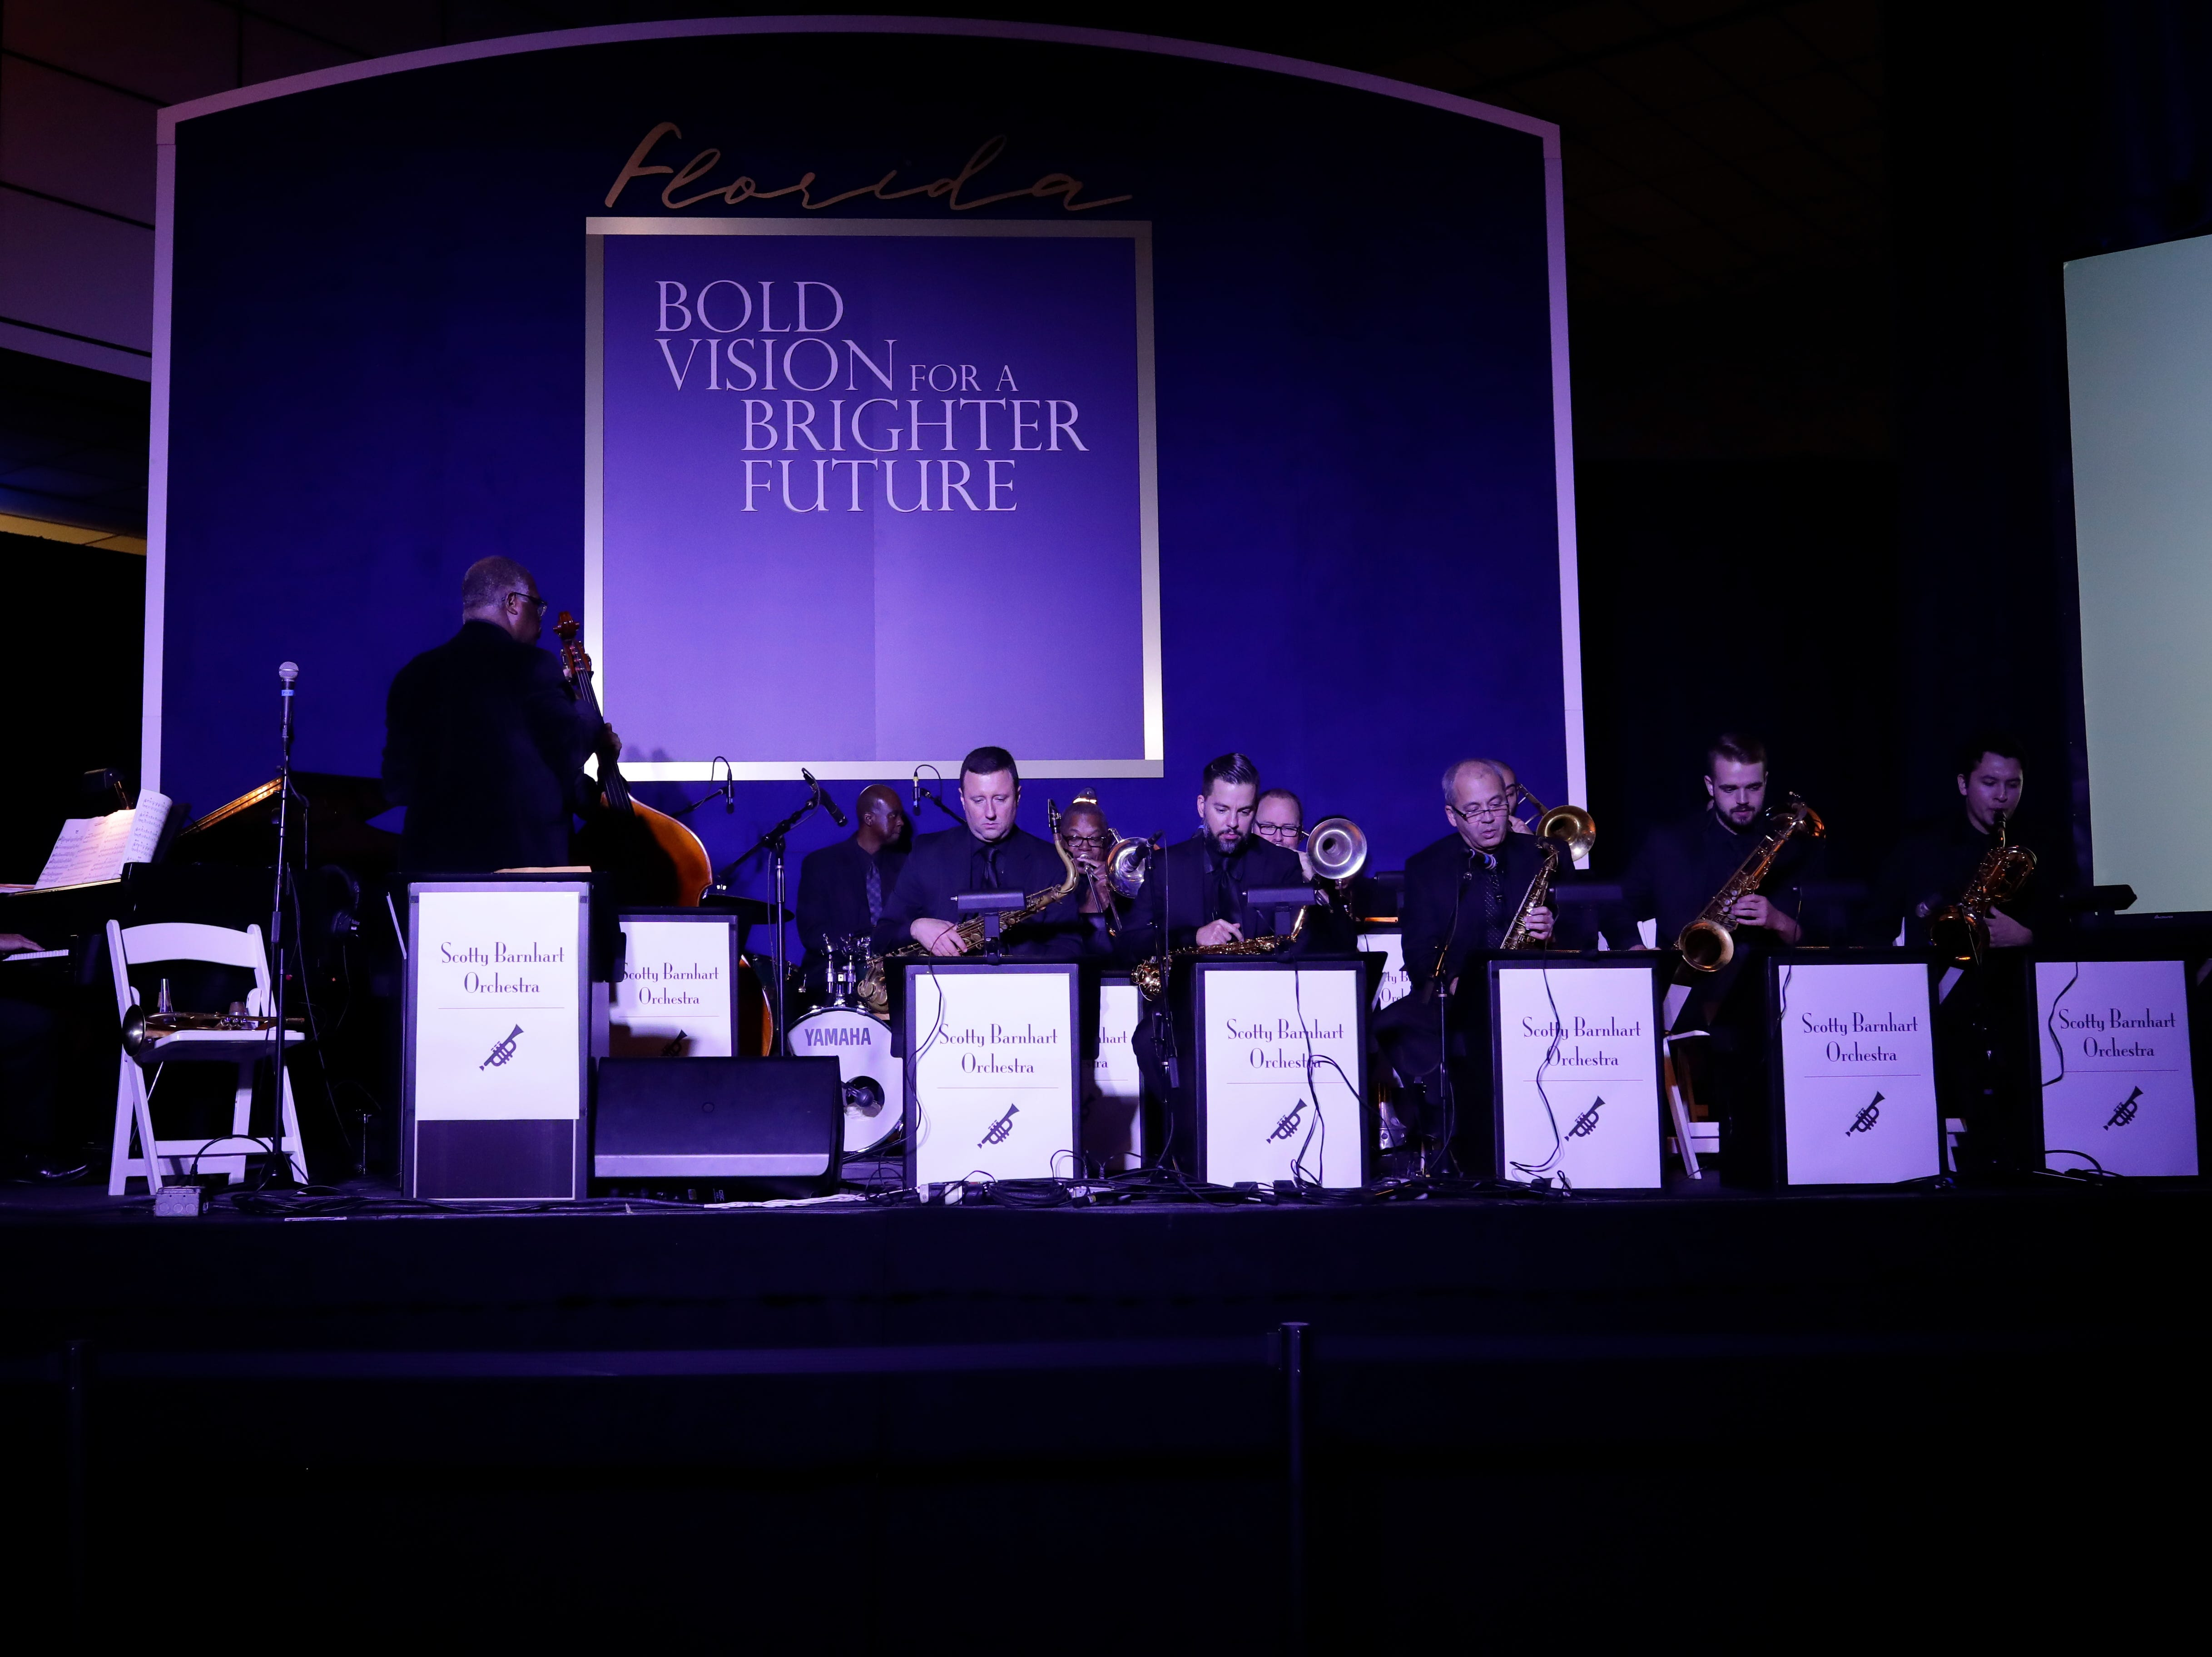 Hundreds of guests from all over Florida attend Florida's 46th Governor's Inaugural Ball at the Tucker Civic Center, Tuesday, Jan. 8, 2019. An orchestra plays as guests mingle.